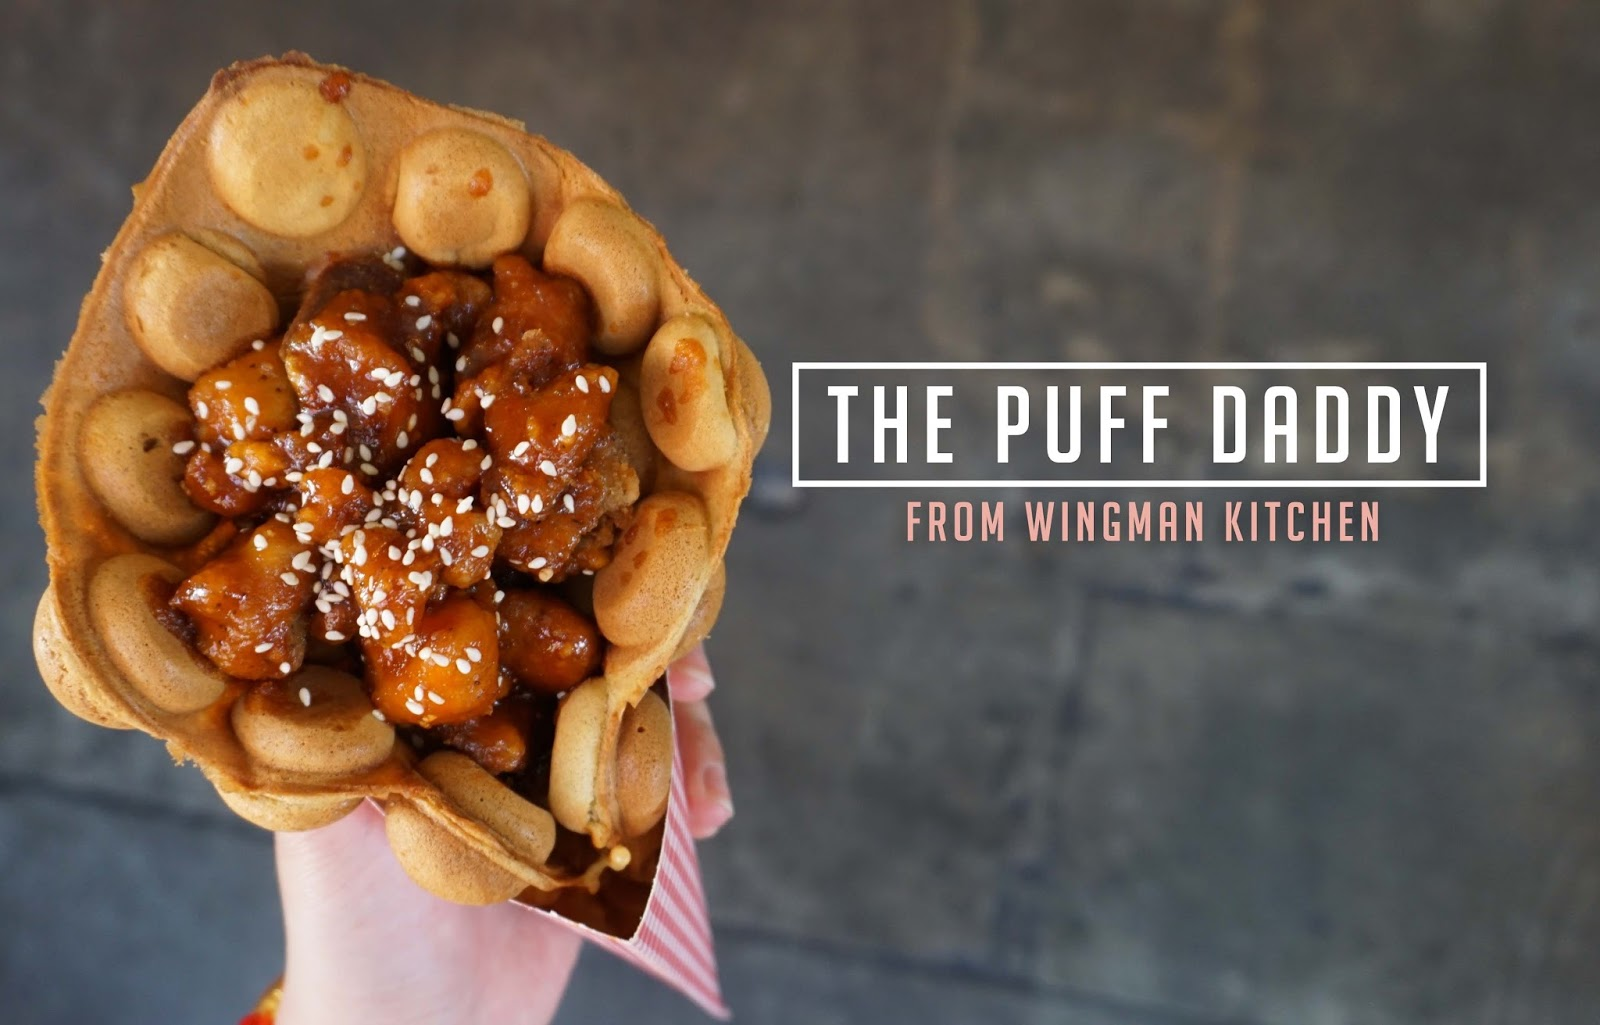 Need a Wingman? This Puff Daddy Will Do Just That @ Wingman Kitchen - Santa Ana